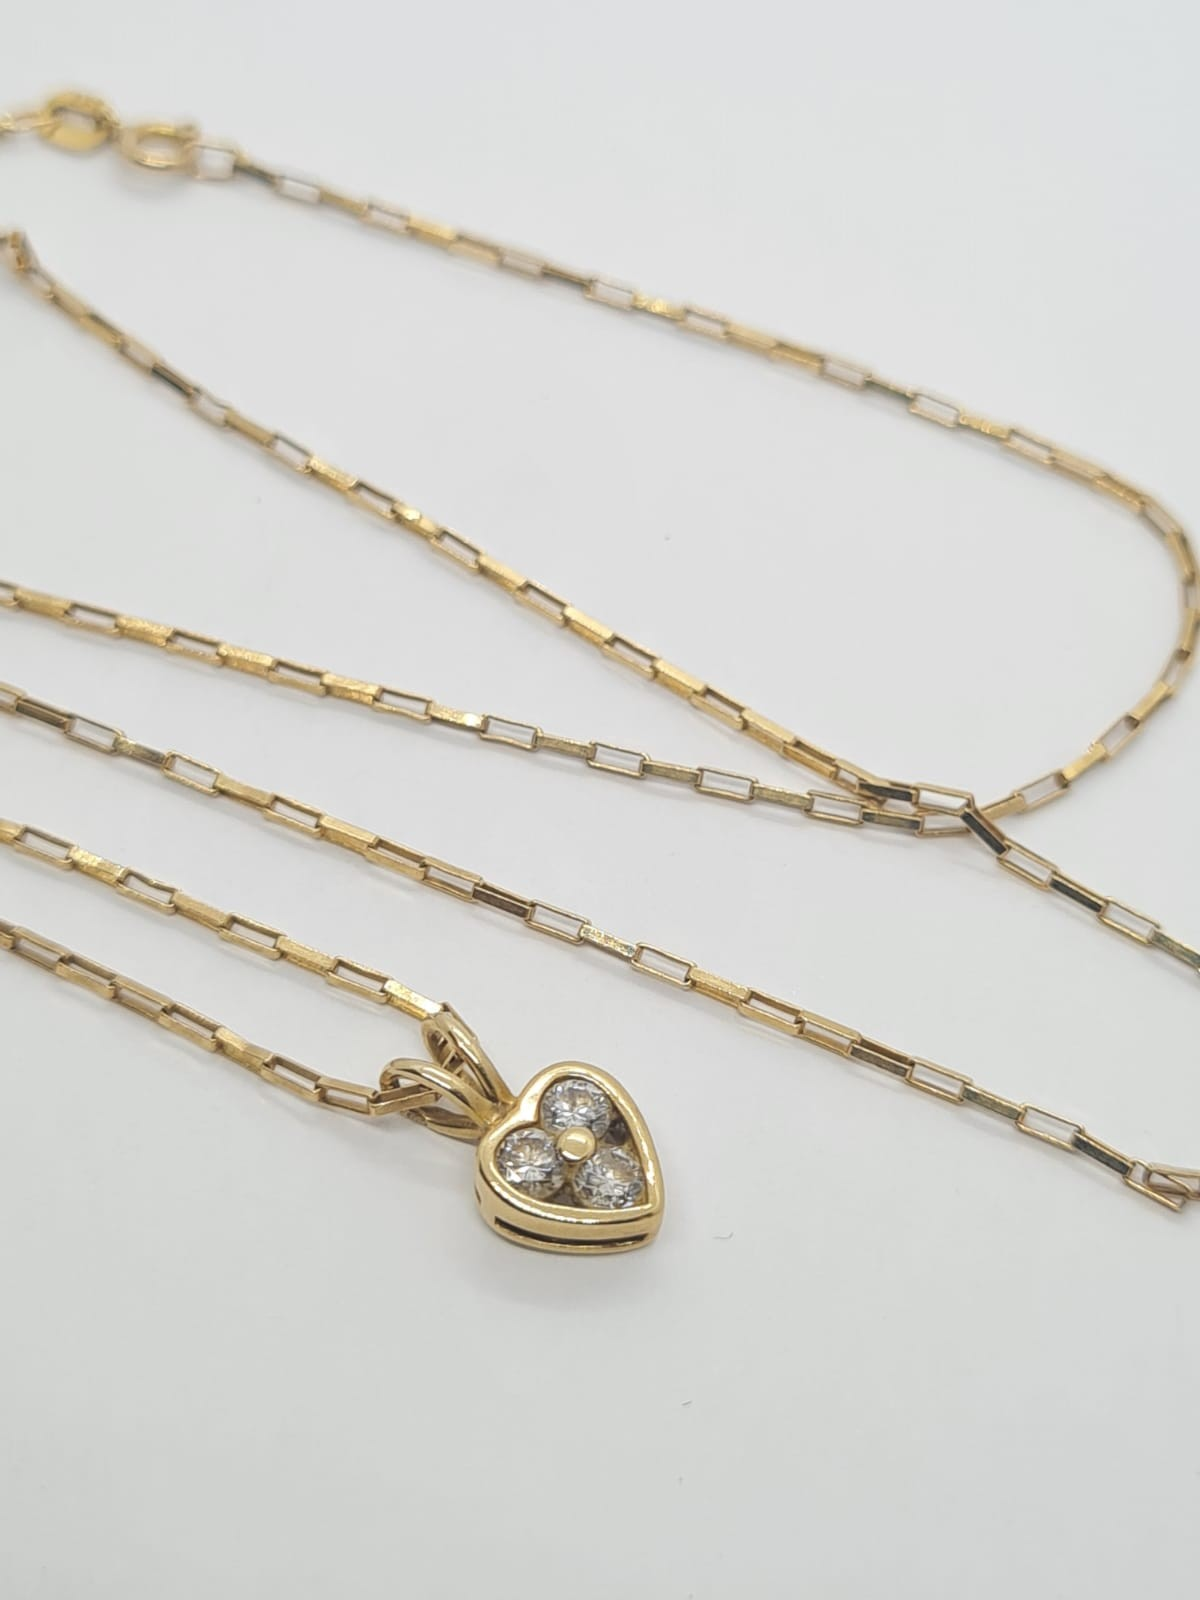 9k Yellow gold DIAMOND SET HEART PENDANDT ON A 52cm long linked box CHAIN, weight 2.5G and approx